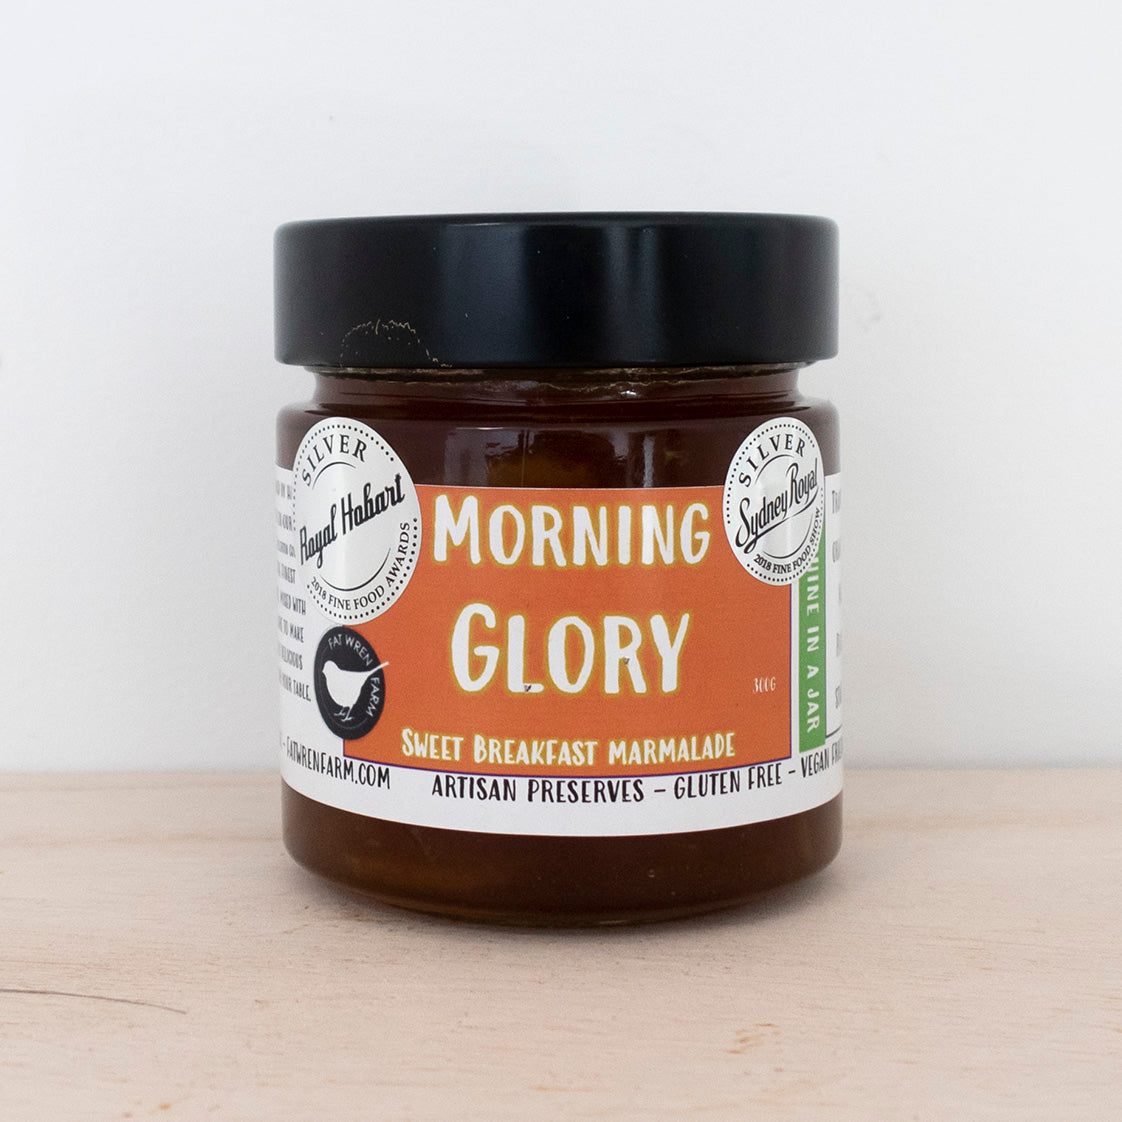 Morning Glory Marmalade